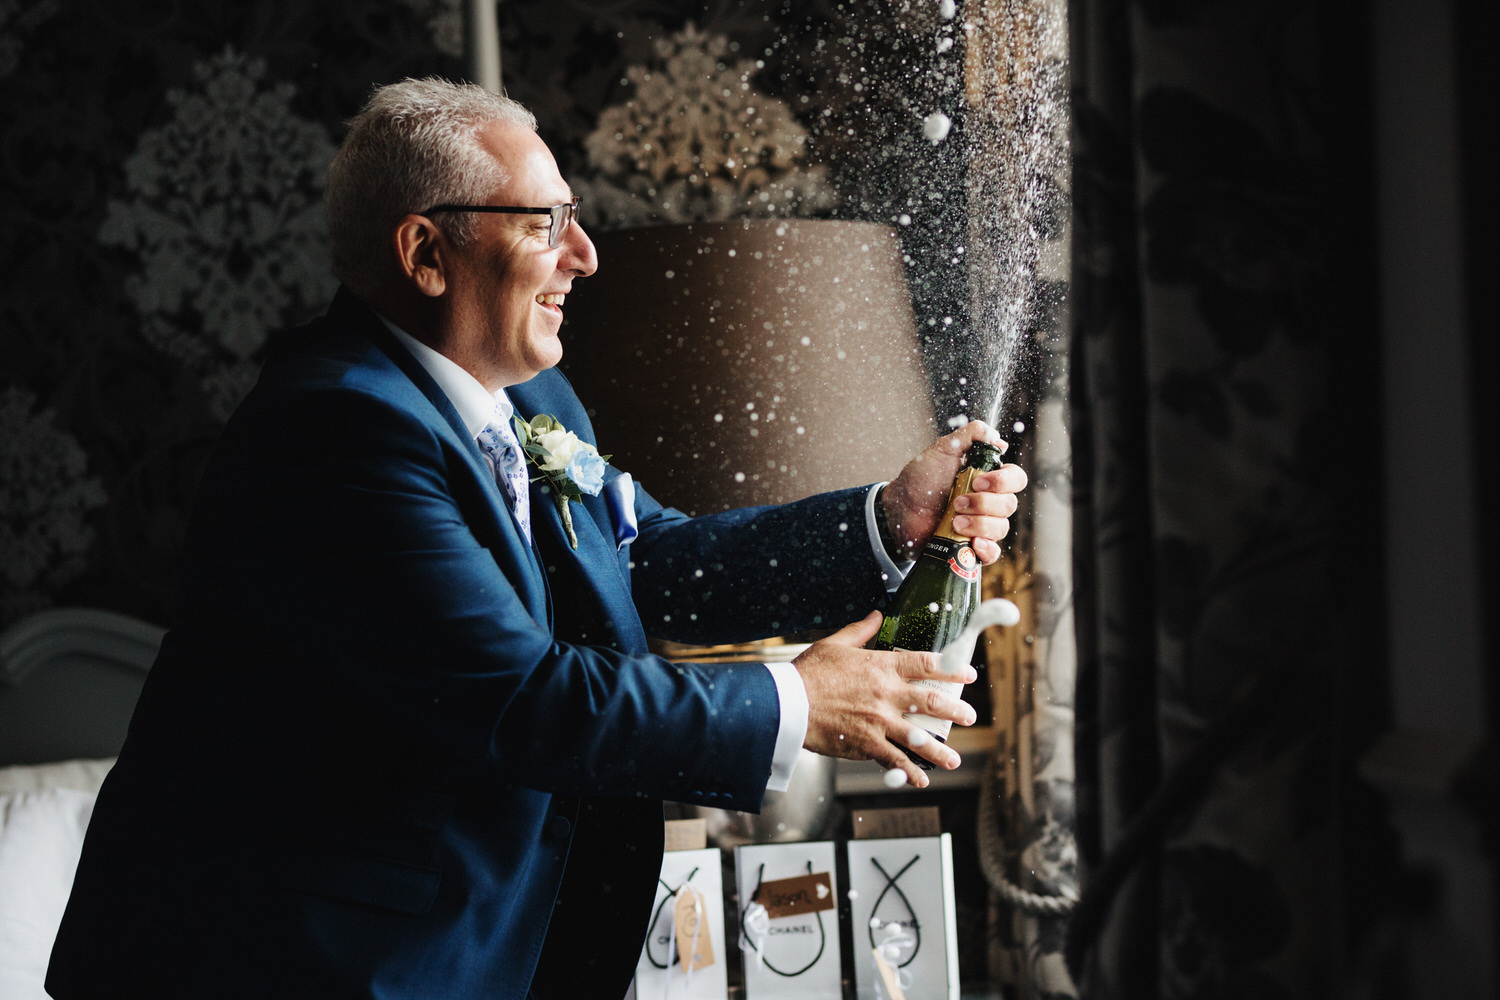 A groomsman opens a champagne bottle in the hotel room and it sprays everywhere